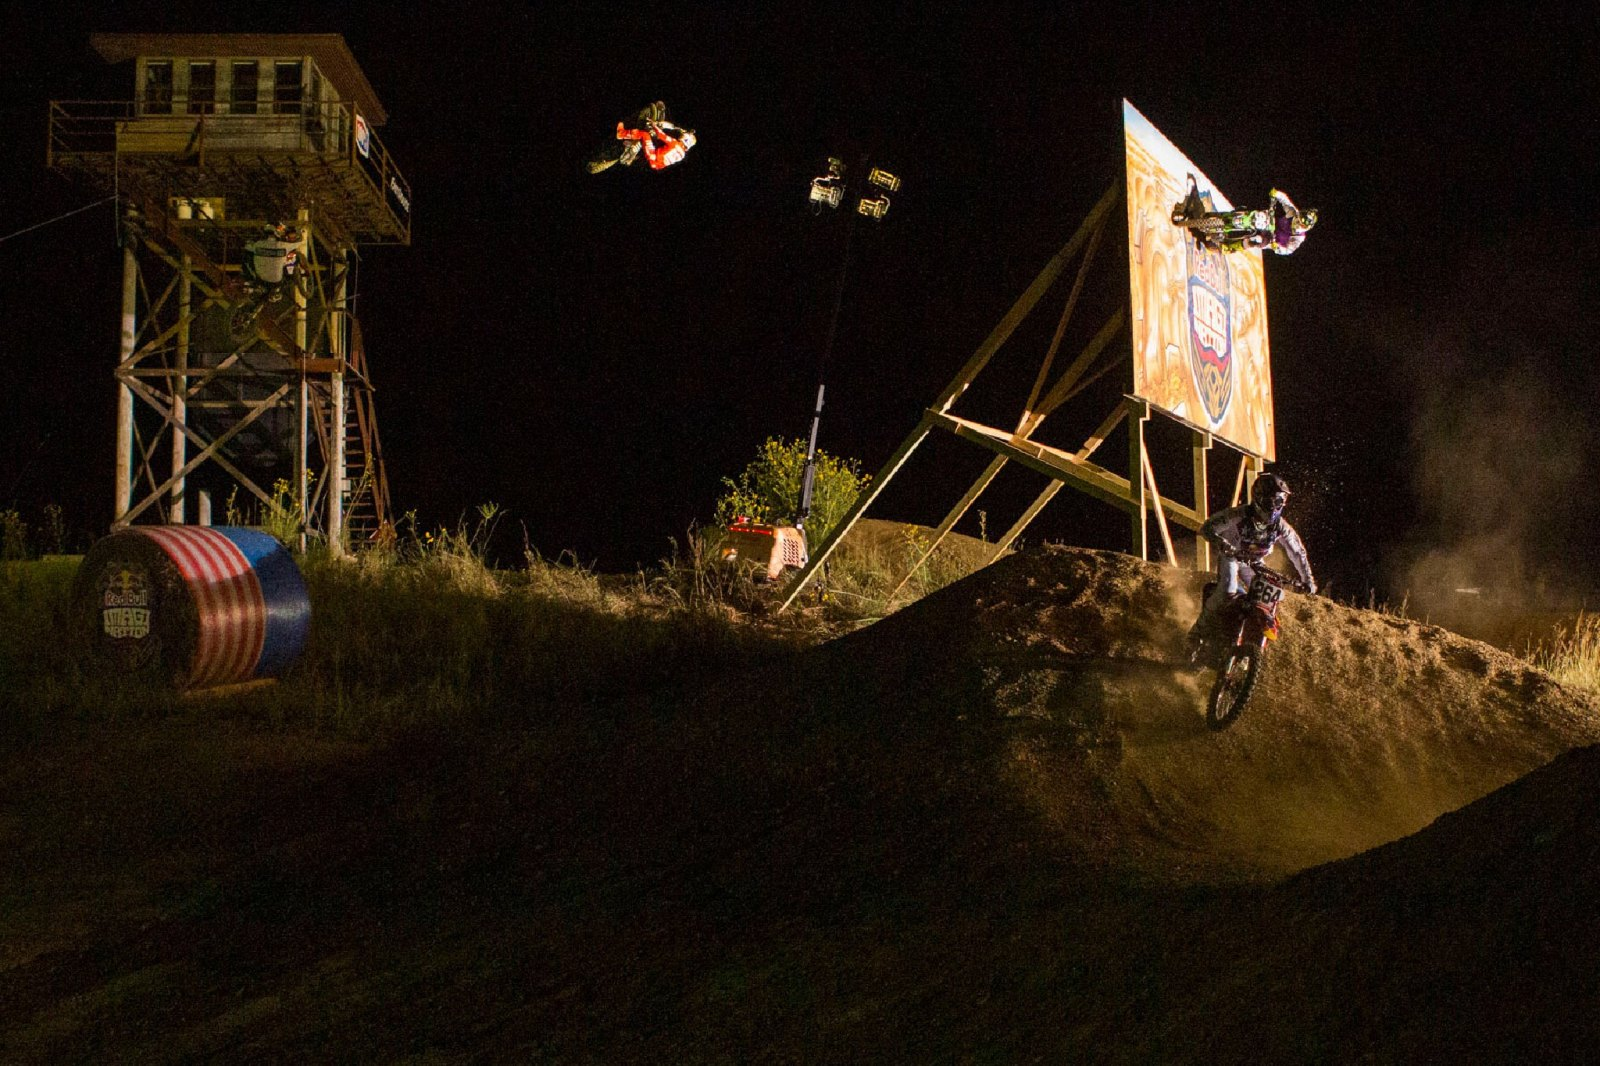 2nd Annual Red Bull Imagination